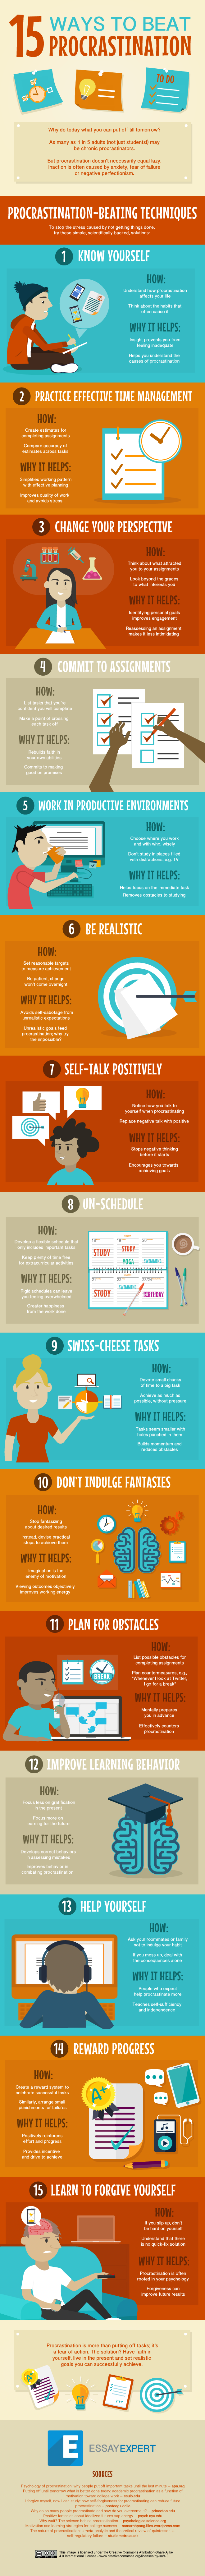 15 Ways Students Can Beat Procrastination